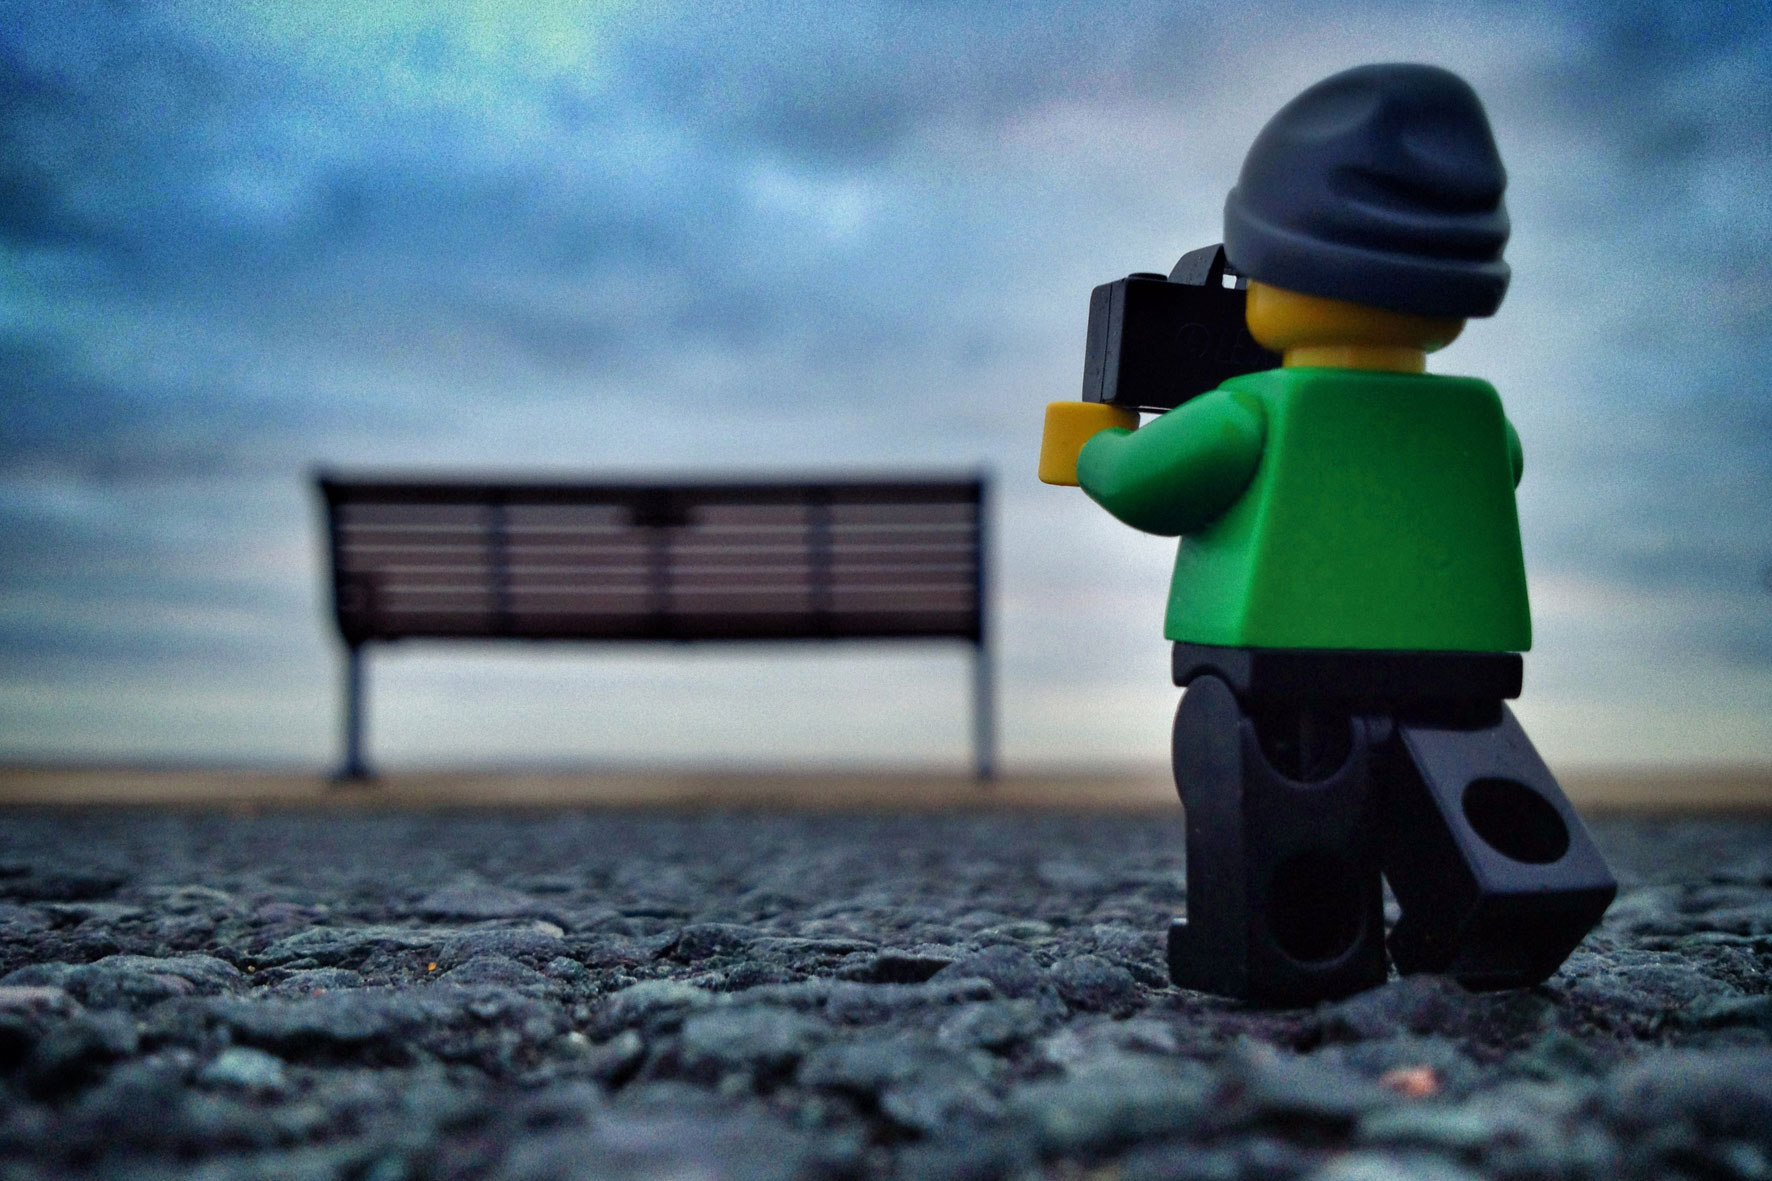 legography - a view of the city